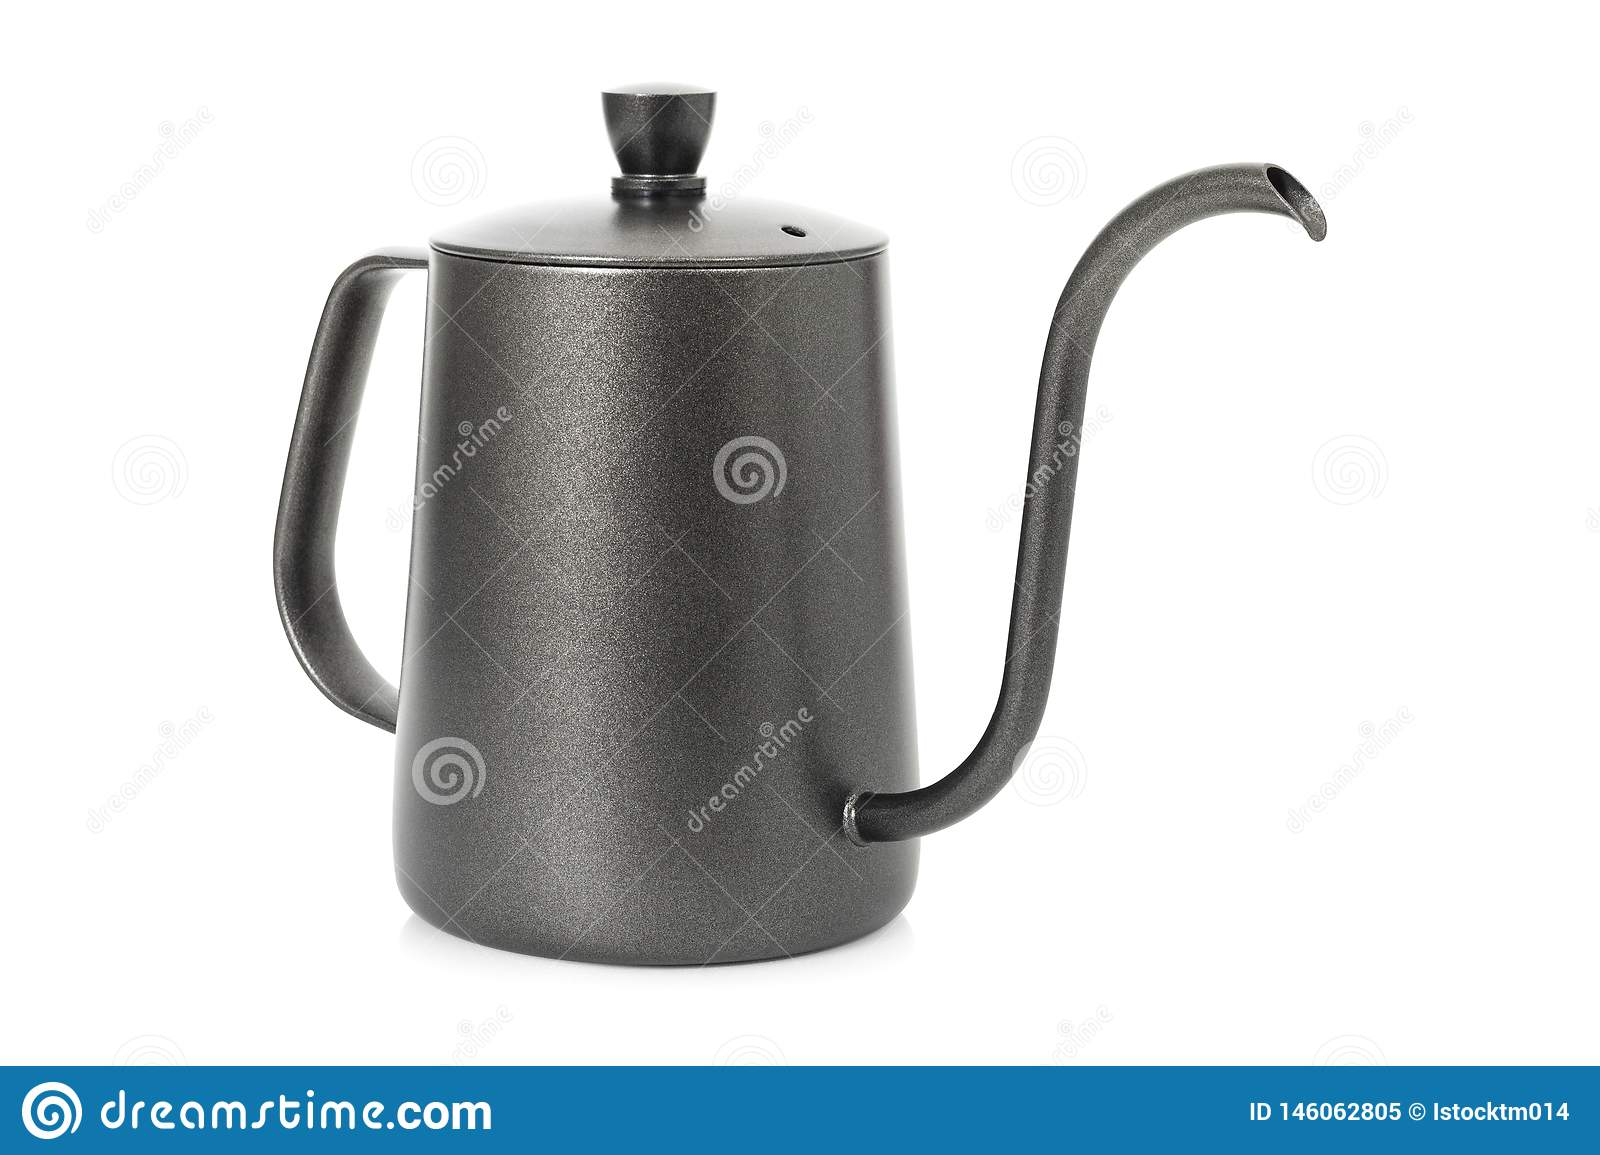 Coffee kettle isolated on white background. Tea kettle with handle. Clipping path